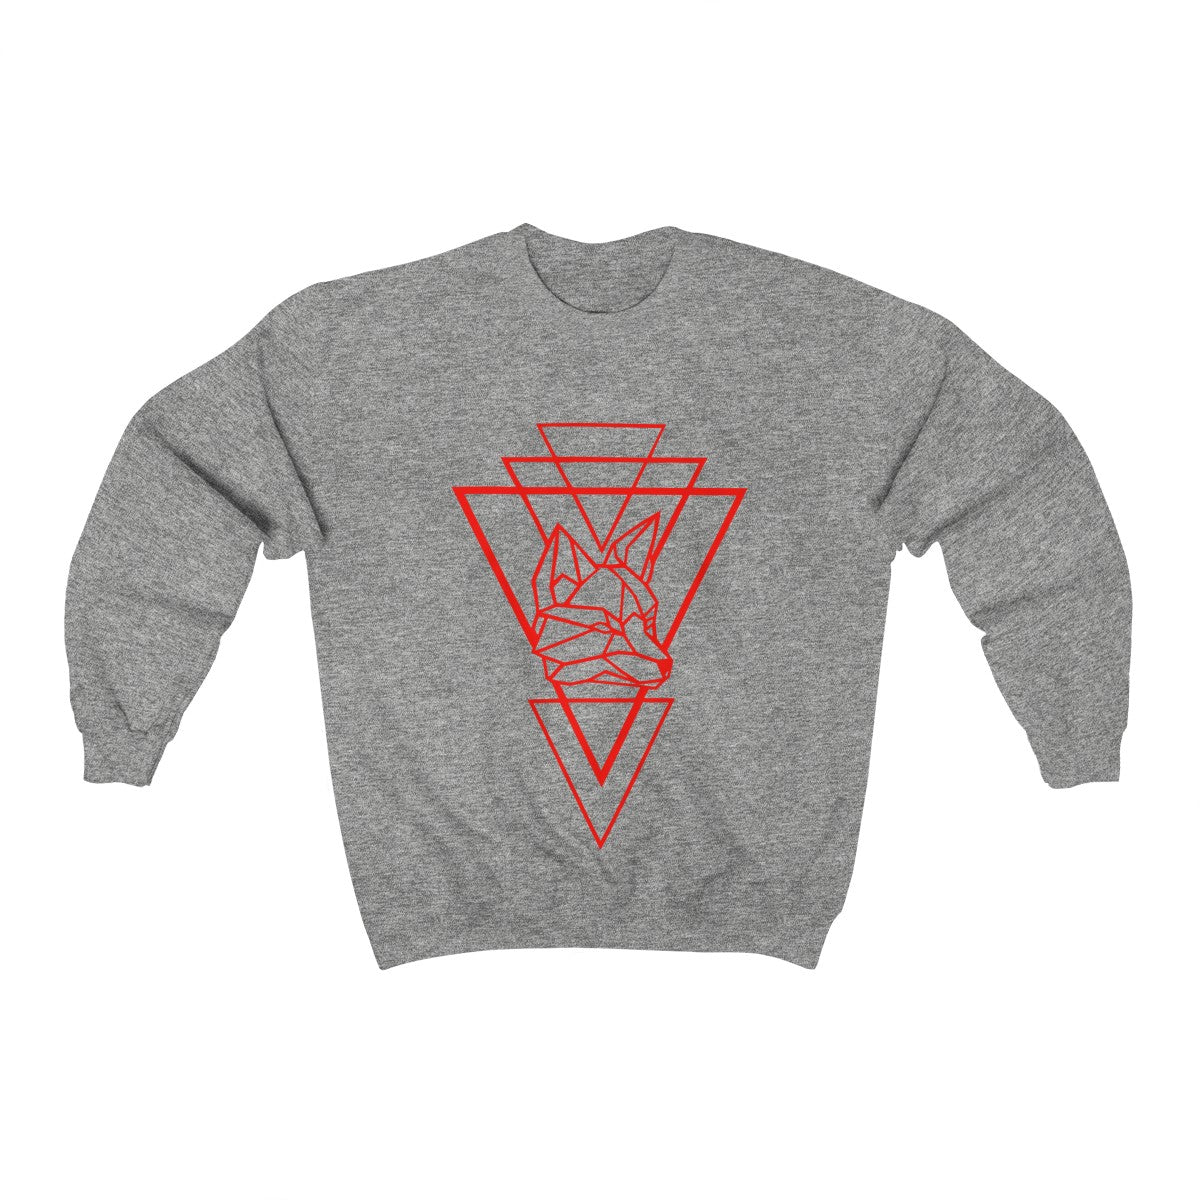 Riding With Nick - Red - Unisex Heavy Blend™ Crewneck Sweatshirt